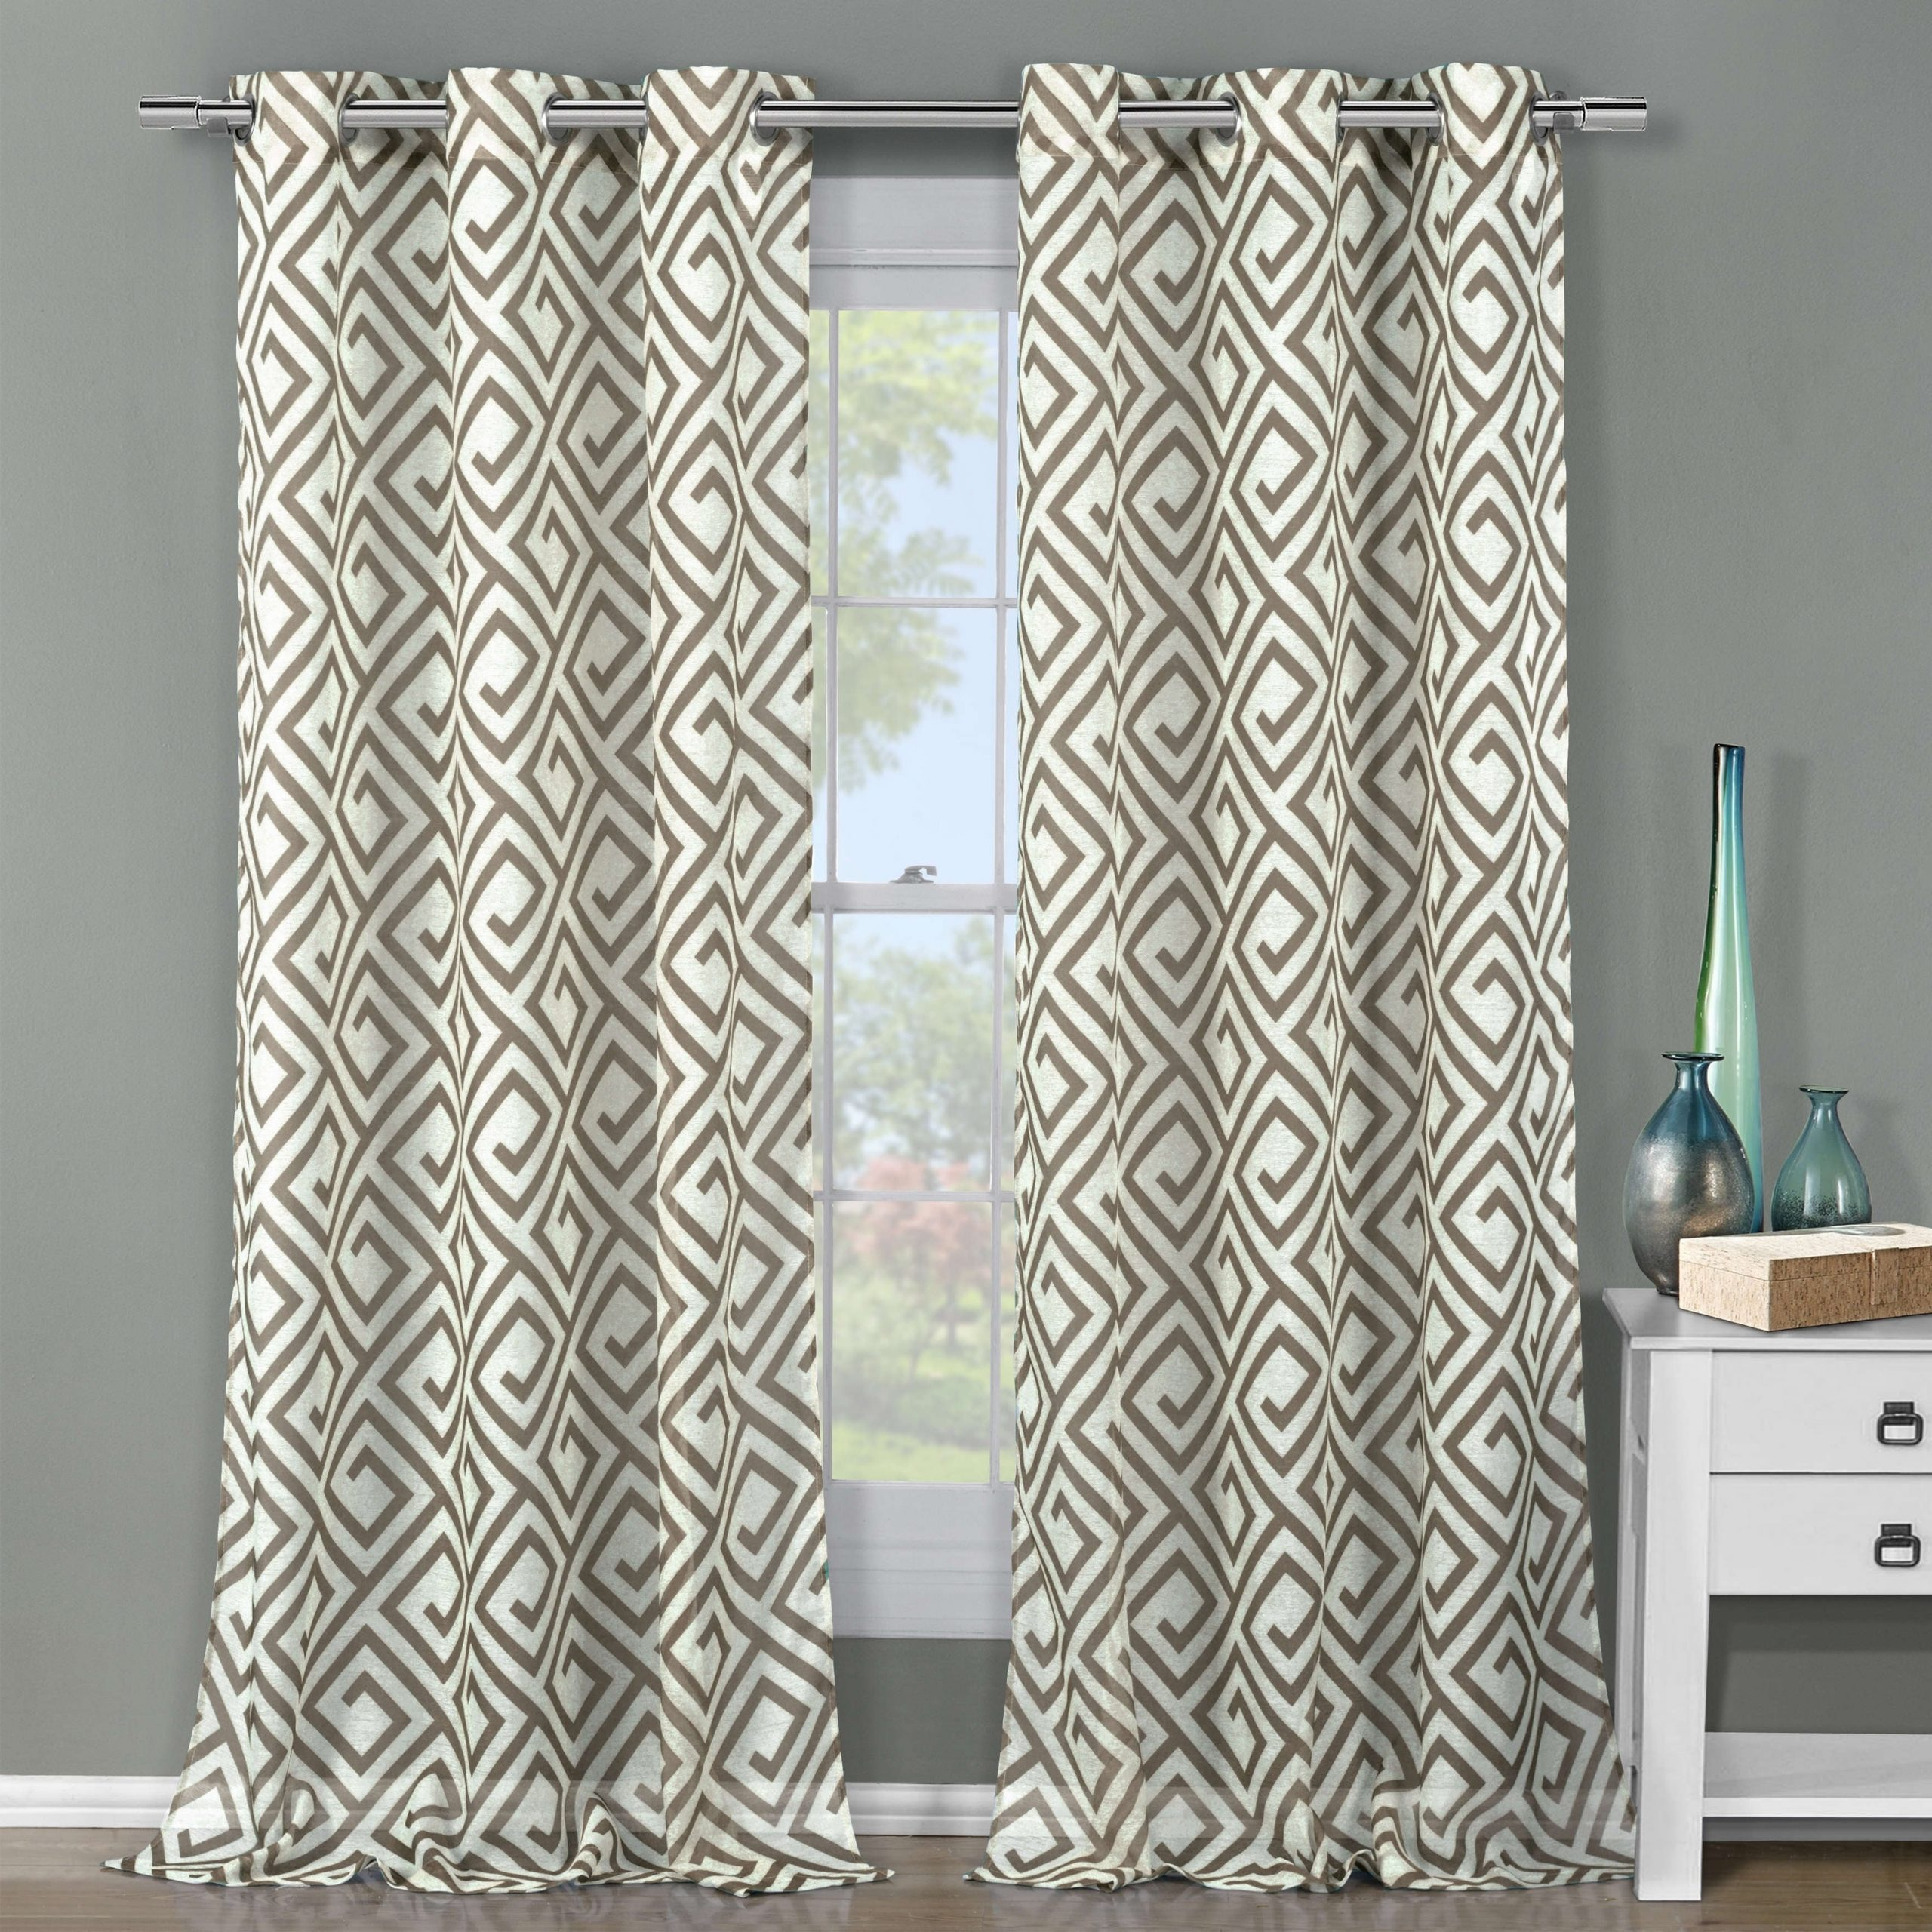 Duck River Anna Sheer 84 Inch Graphic Grommet Curtain Panel Pair – 51X84 For Most Recent The Curated Nomad Duane Jacquard Grommet Top Curtain Panel Pairs (View 20 of 21)